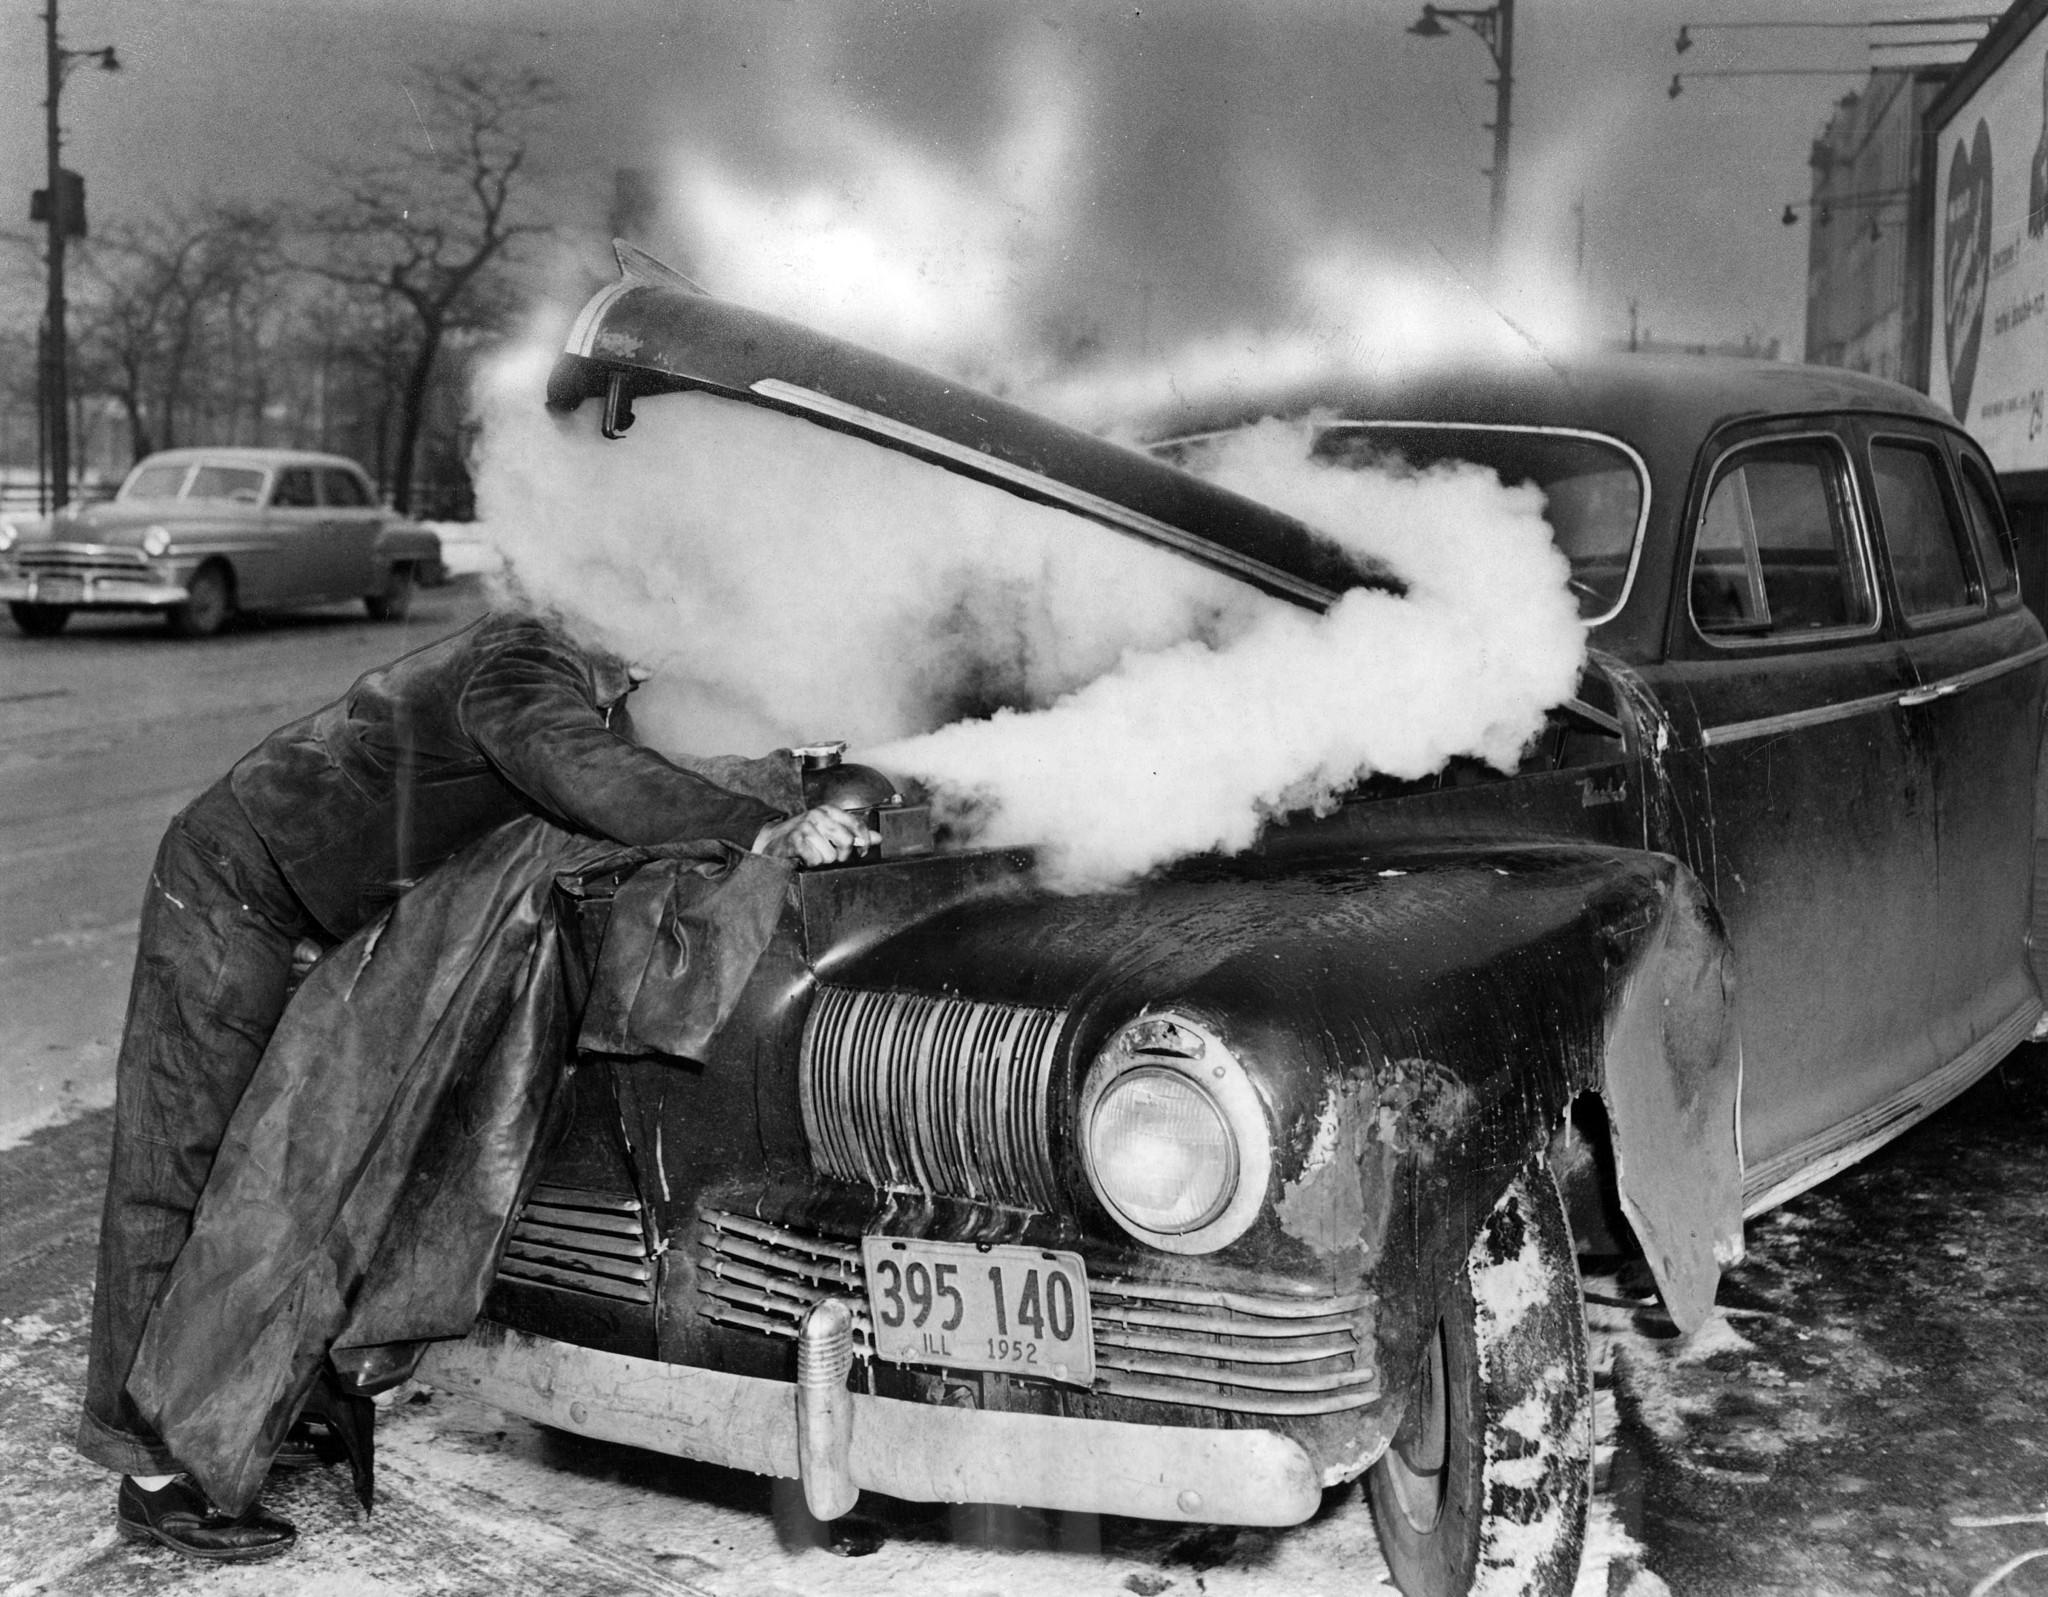 Lawrence Kulik, shrouded by steam from his boiling radiator, got caught with low anti-freeze in near zero cold at Ogden Ave. and Washington Blvd. on Jan. 24, 1952, in Chicago.